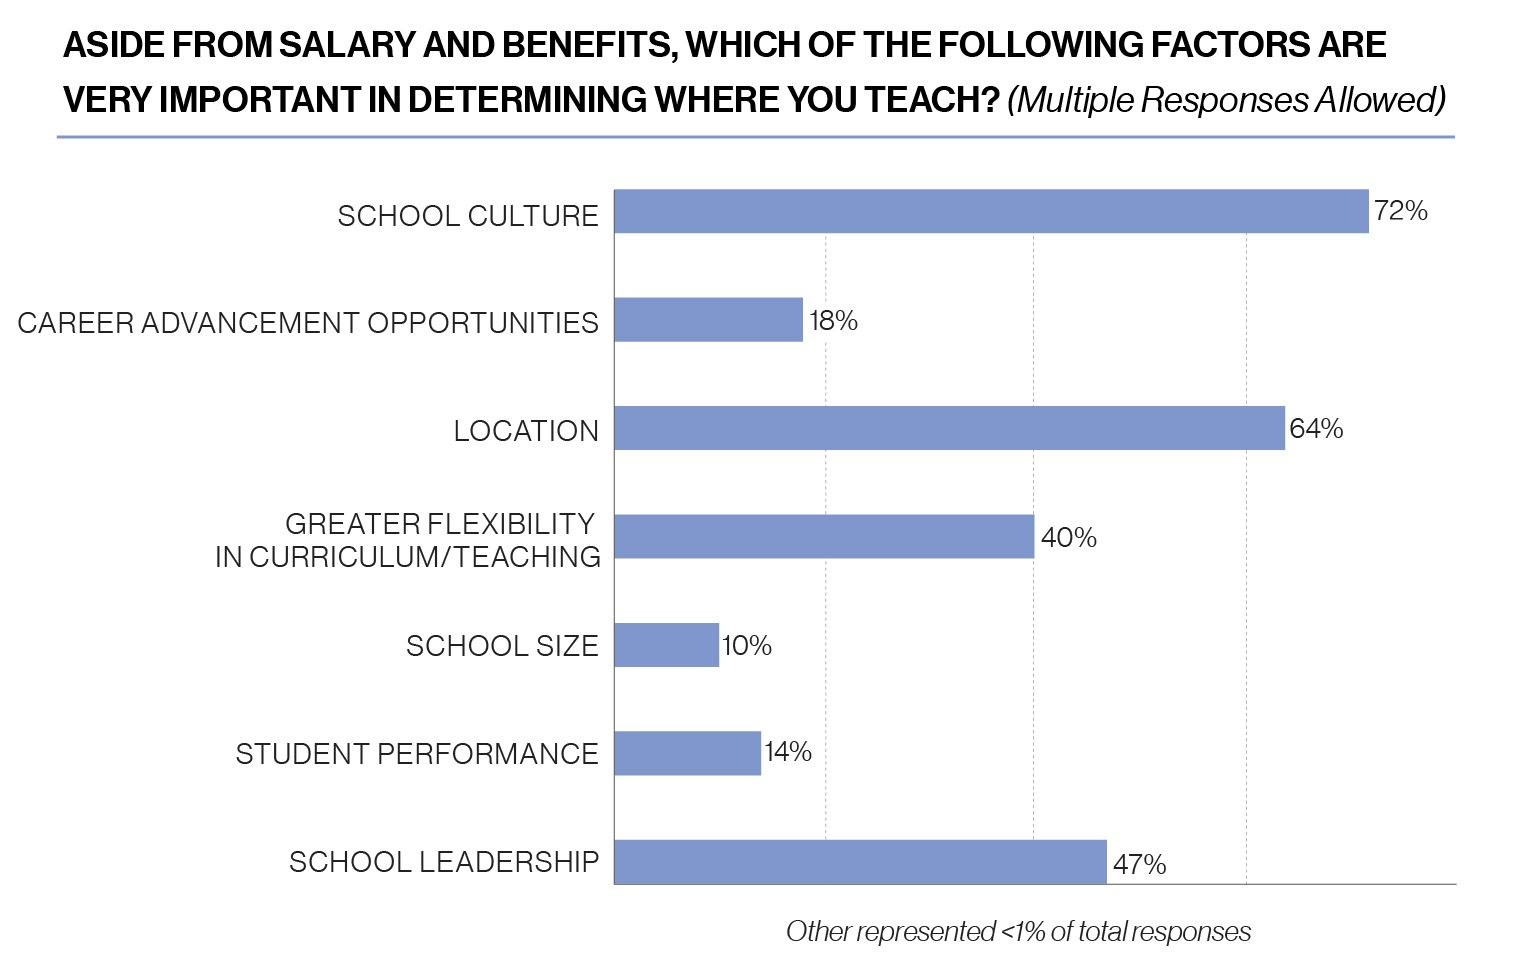 Chart, aside from salary and benefits, which of the following factors are very important in determining where you teach? 72% say school culture, 18% say career advancement opportunities, 64% say location, 40% say greater flexibility in curriculum and teaching, 10% say school size, 14% say student performance, 47% say school leadership